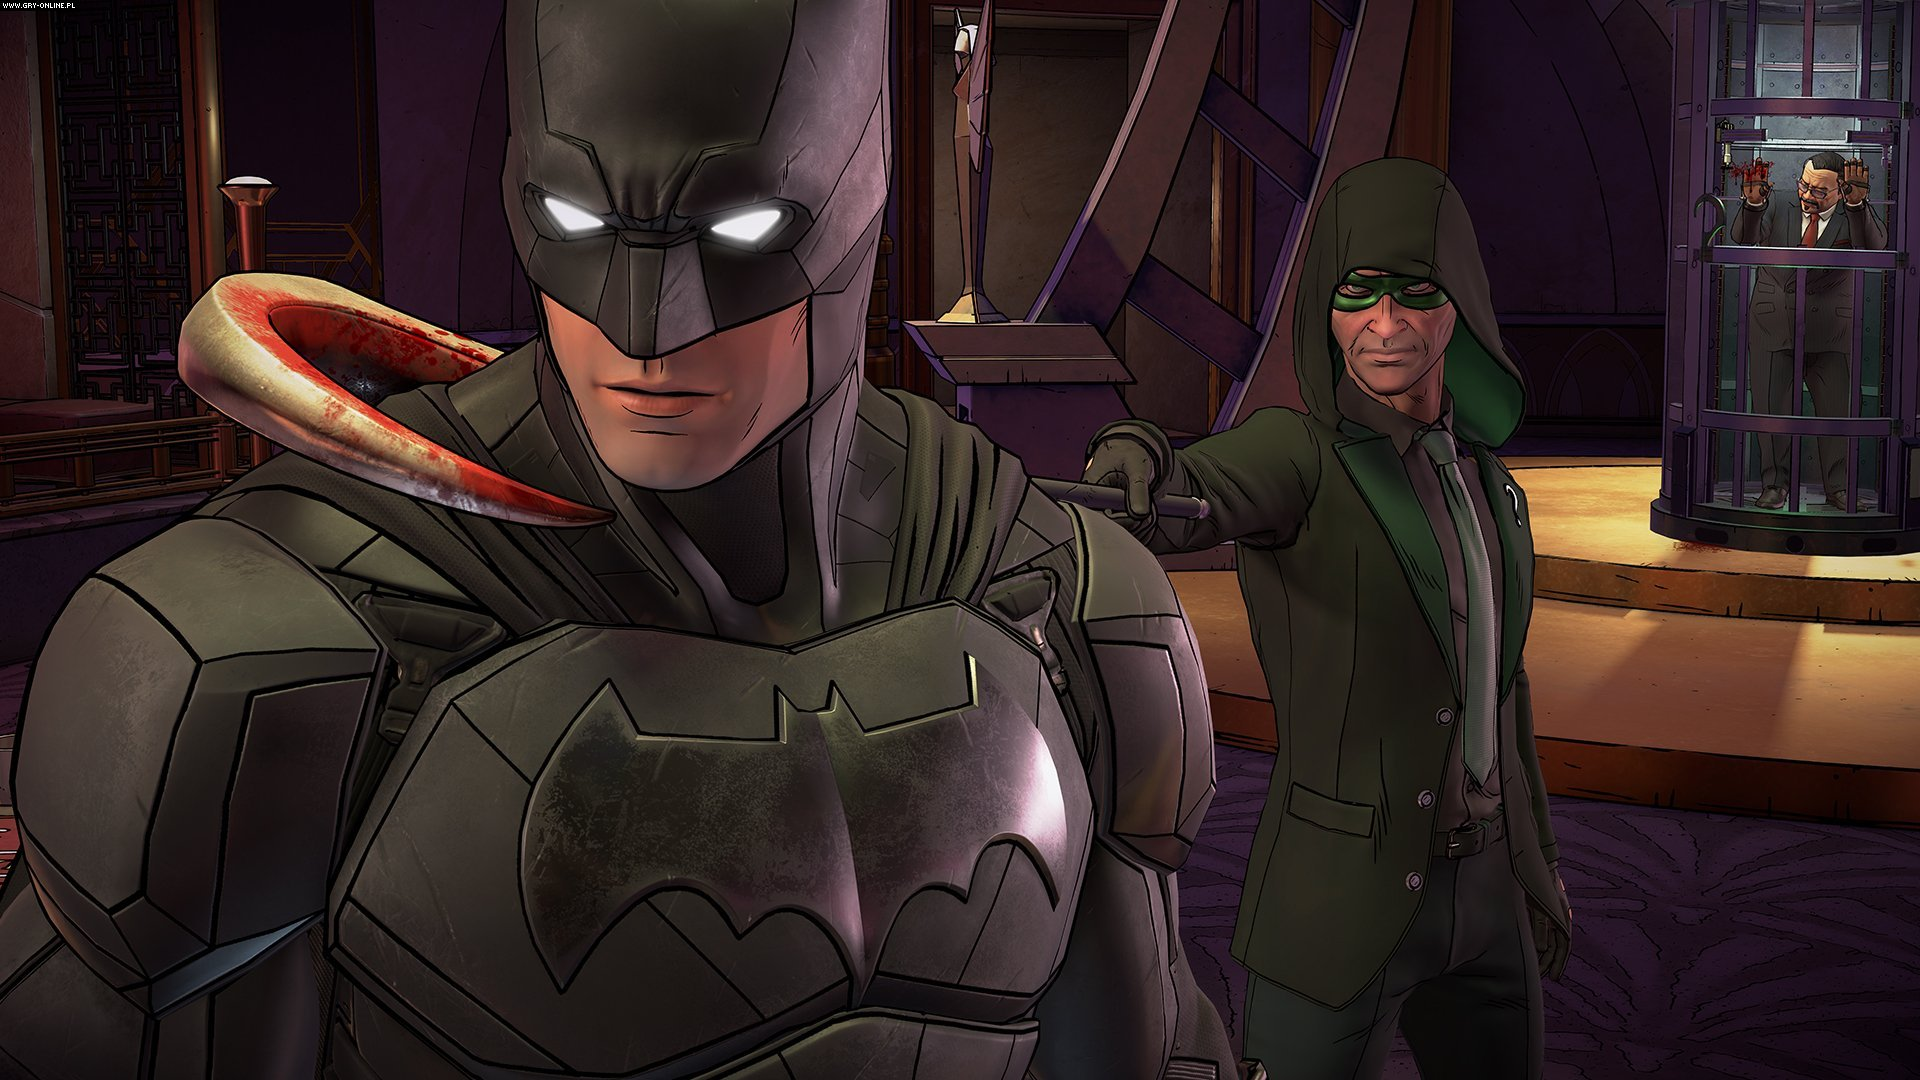 Batman: The Telltale Series - The Enemy Within PC, PS4, XONE, AND, iOS Games Image 24/29, Telltale Games